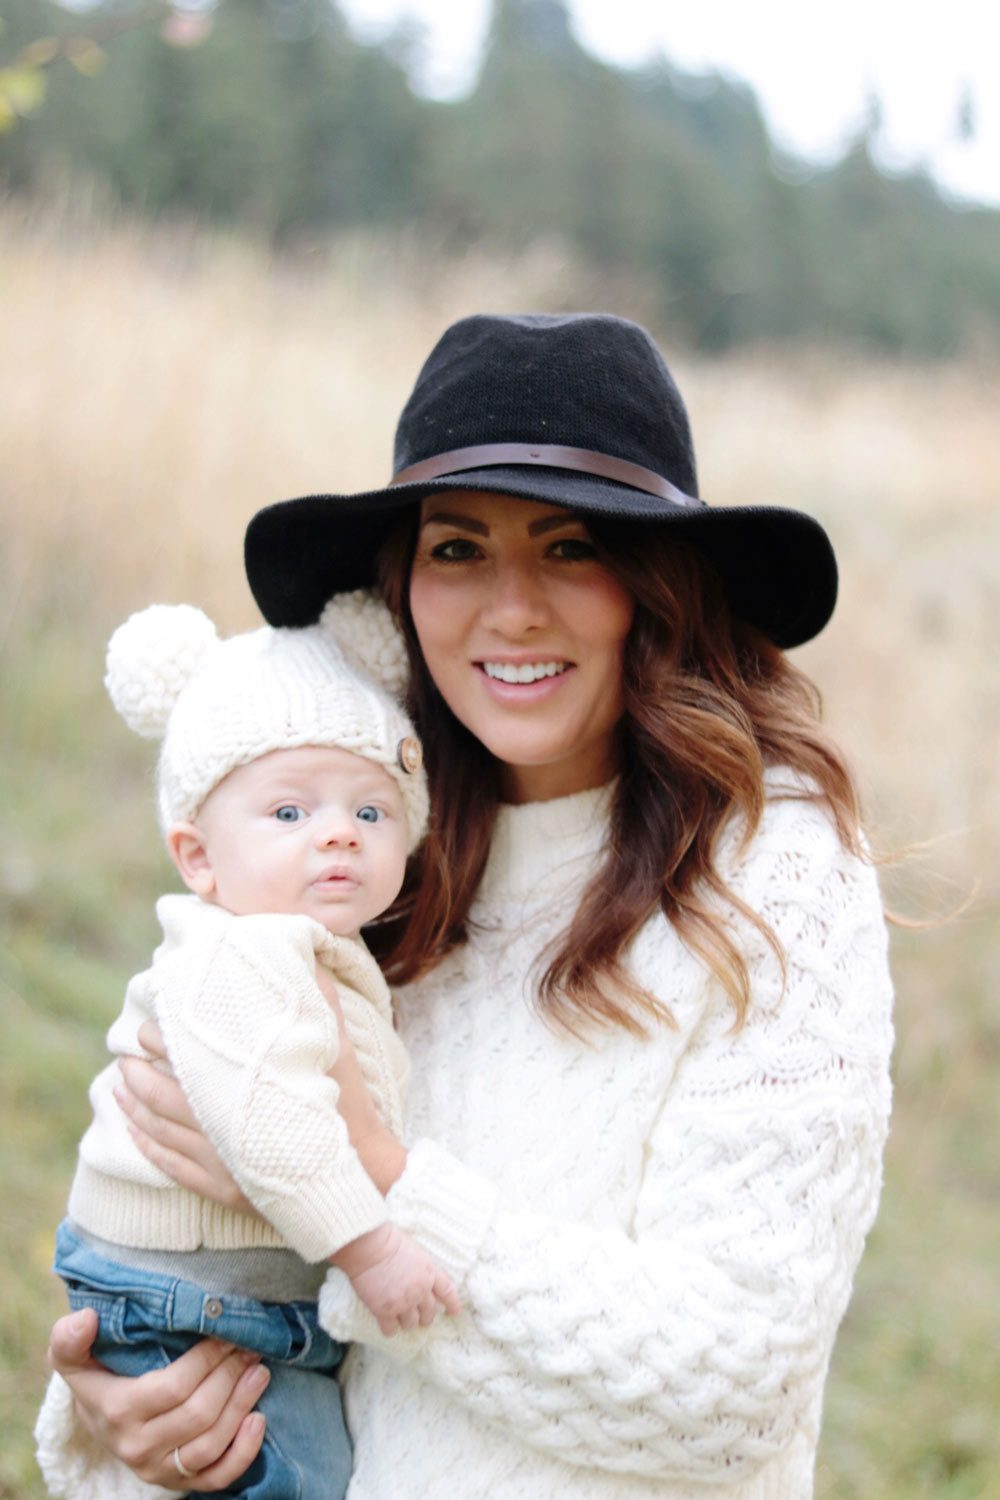 jill-holding-leo-in-the-orchard-in-goodnight-macaroon-sweater-and-hat